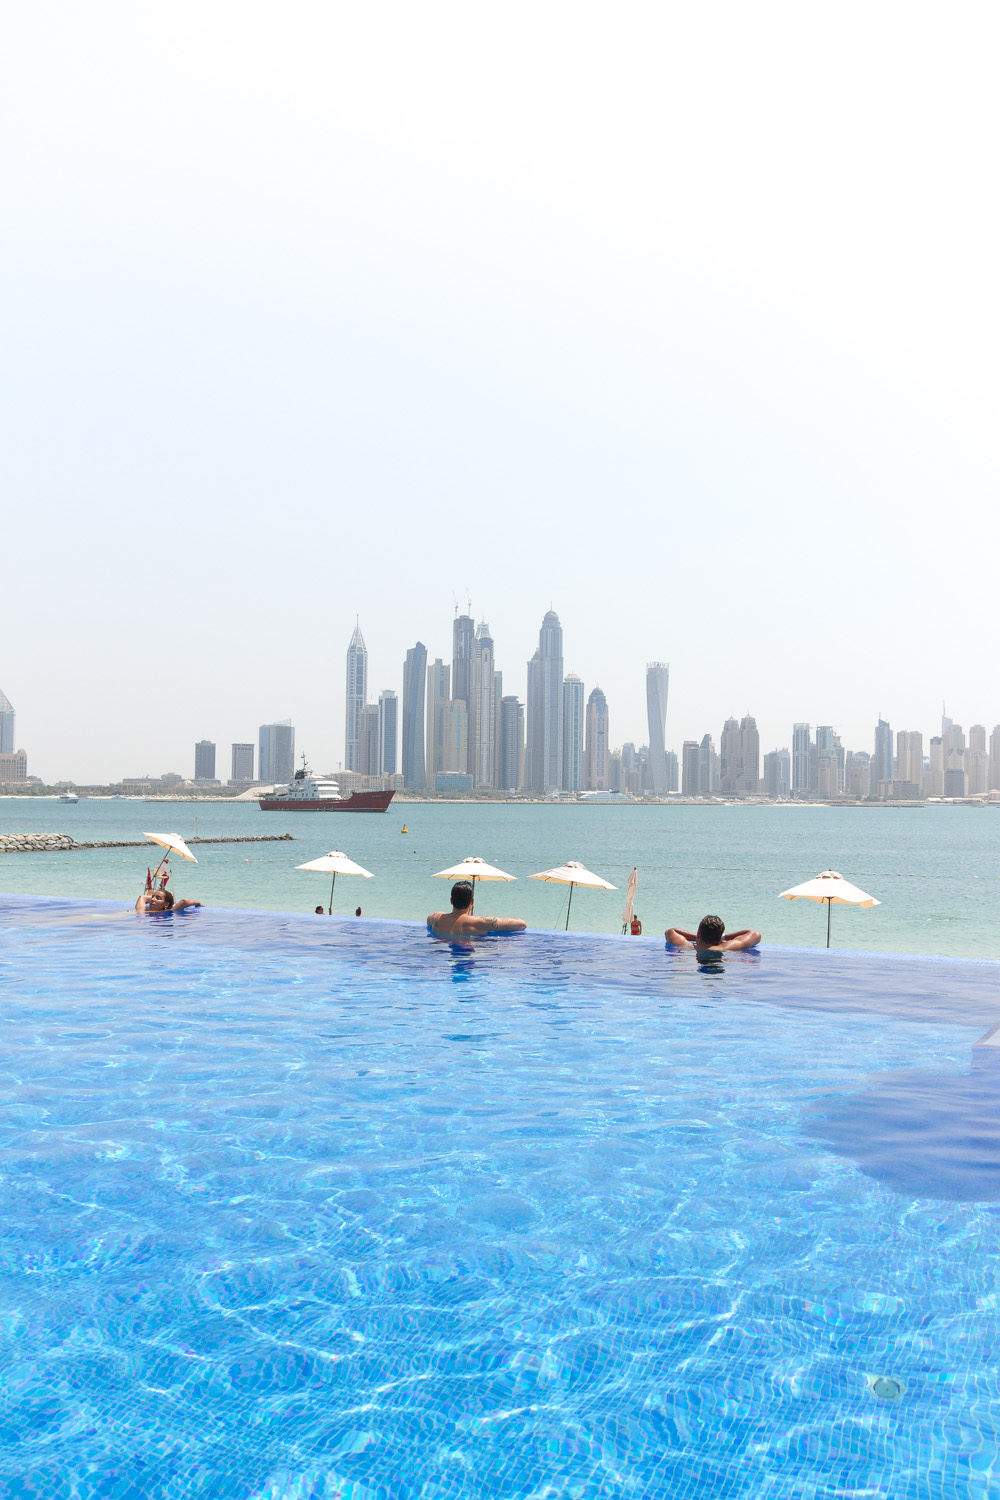 Christian-Schaffer-United-Arab-Emirates-Dubai-Pool.jpg